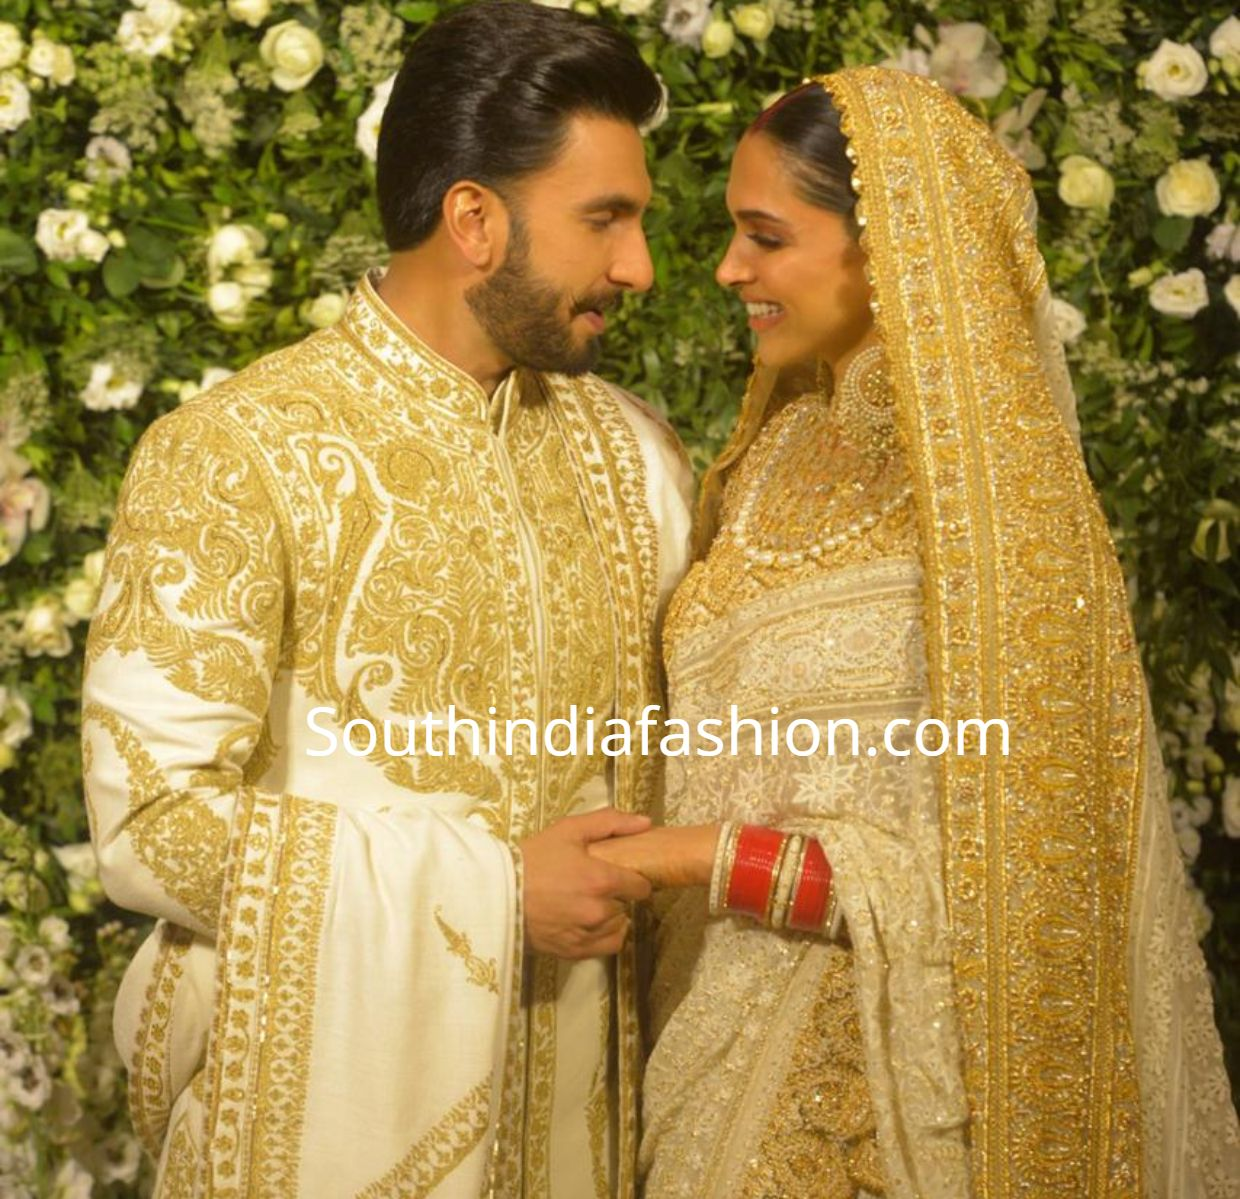 Deepika and Ranveer at their Wedding Reception in Mumbai ...